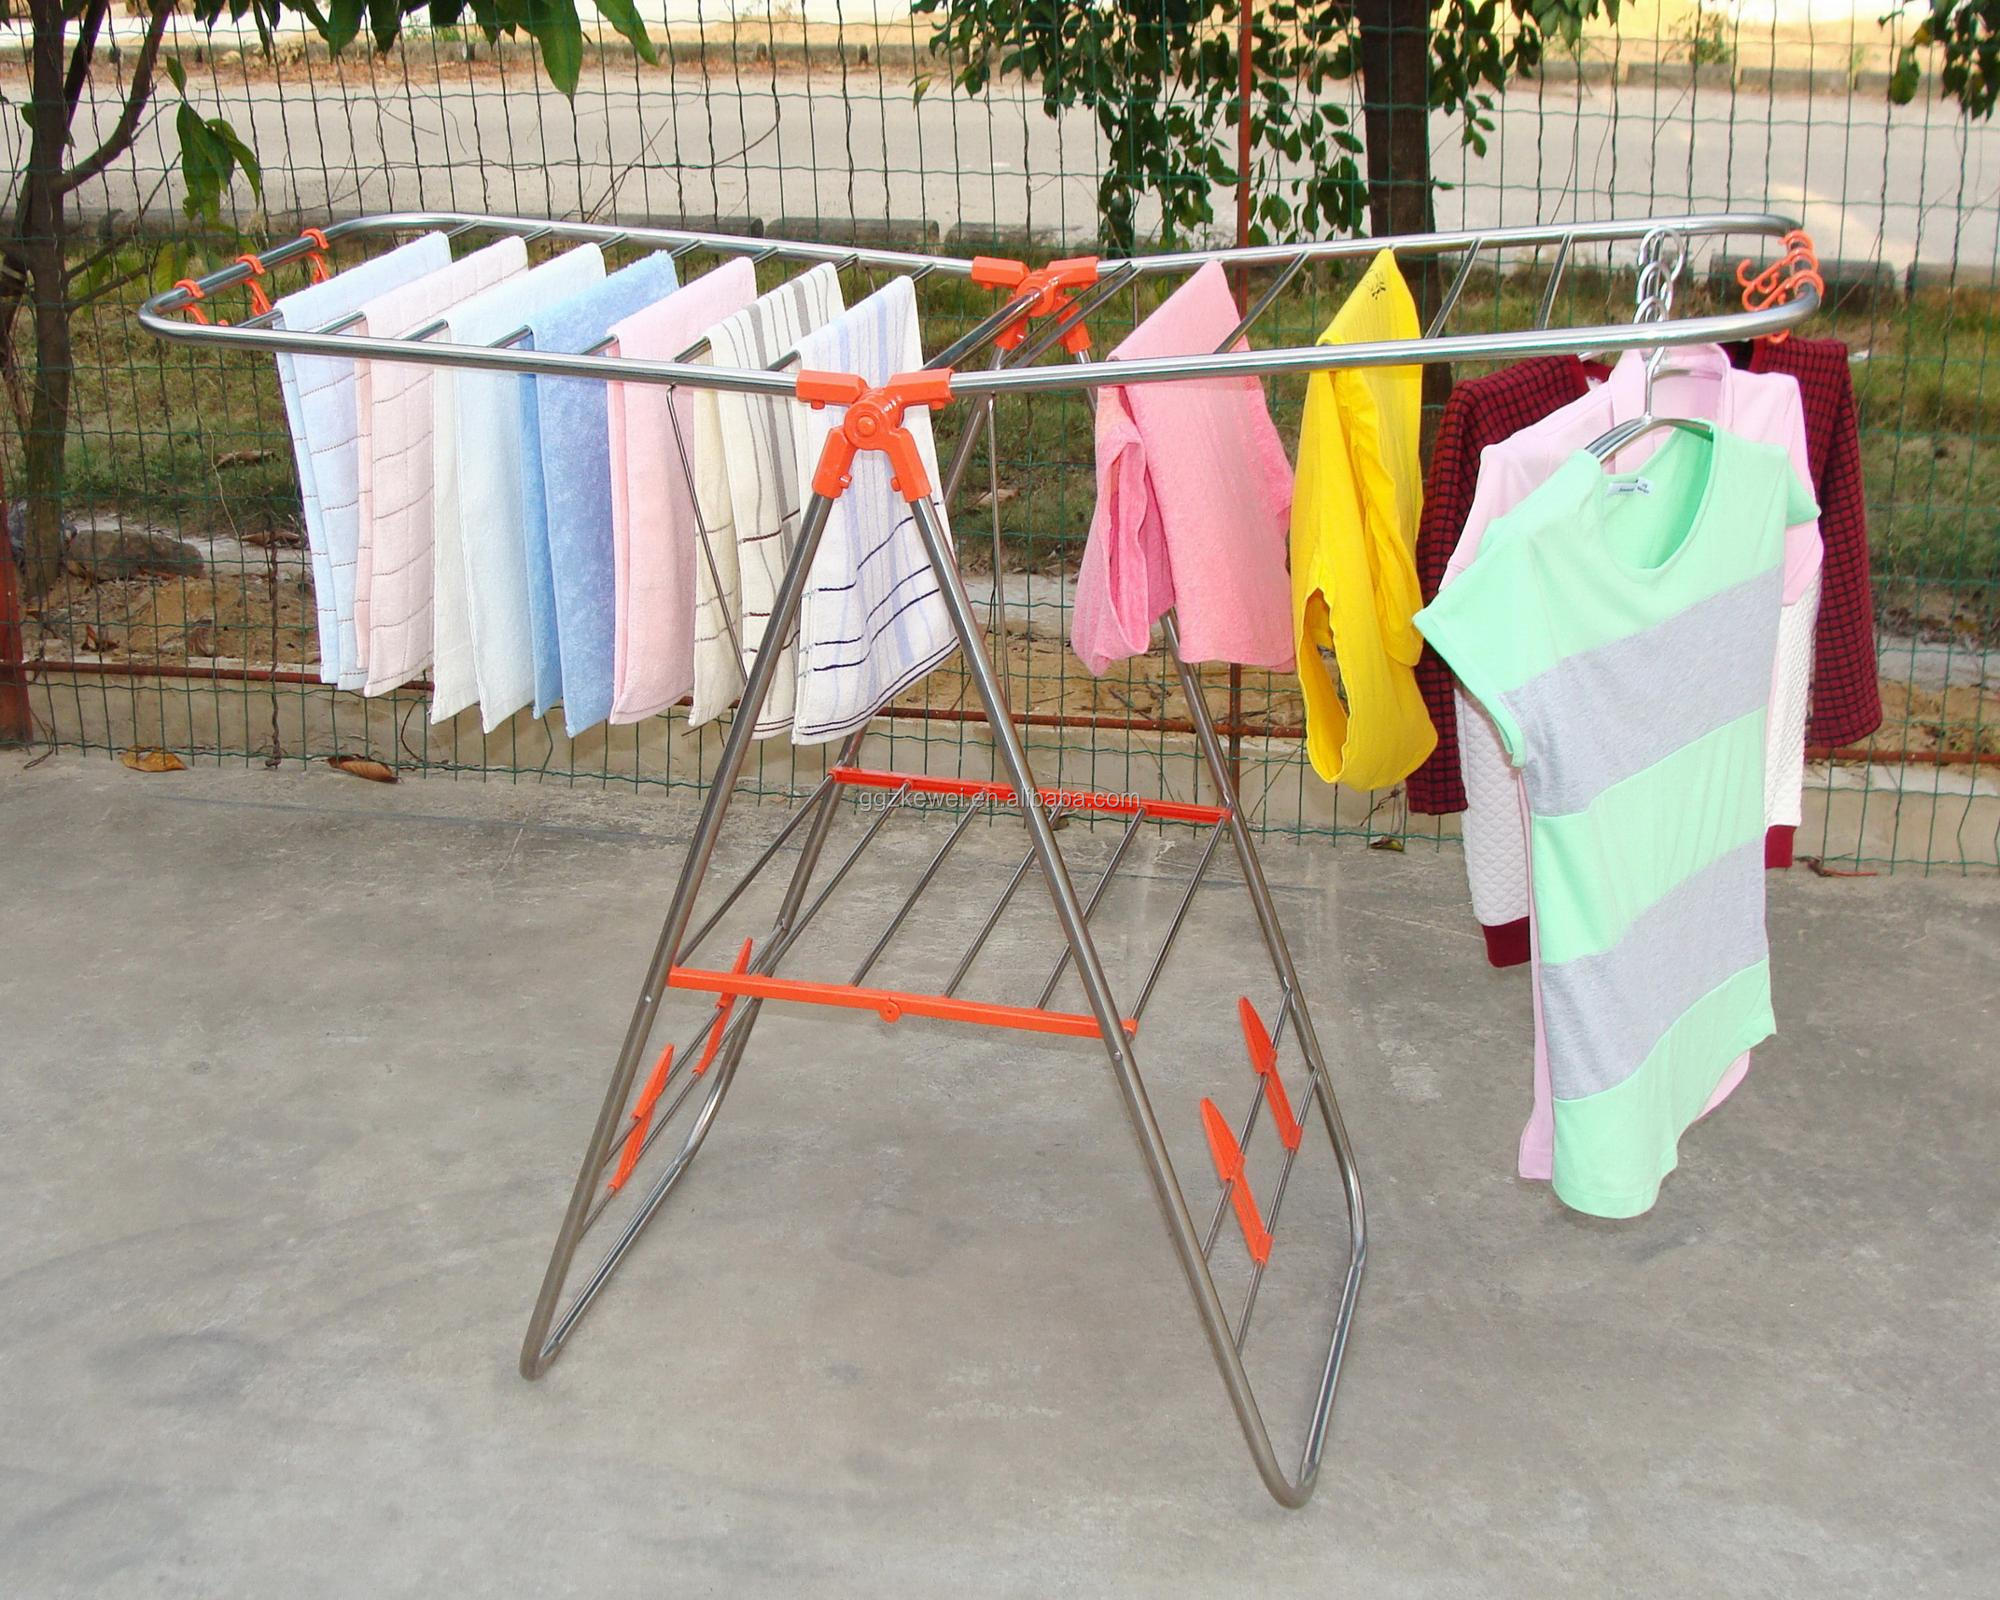 Stainless Steel Foldable Clothes Hanger Rack Manufacturer Wholesale MR-6018Y-O